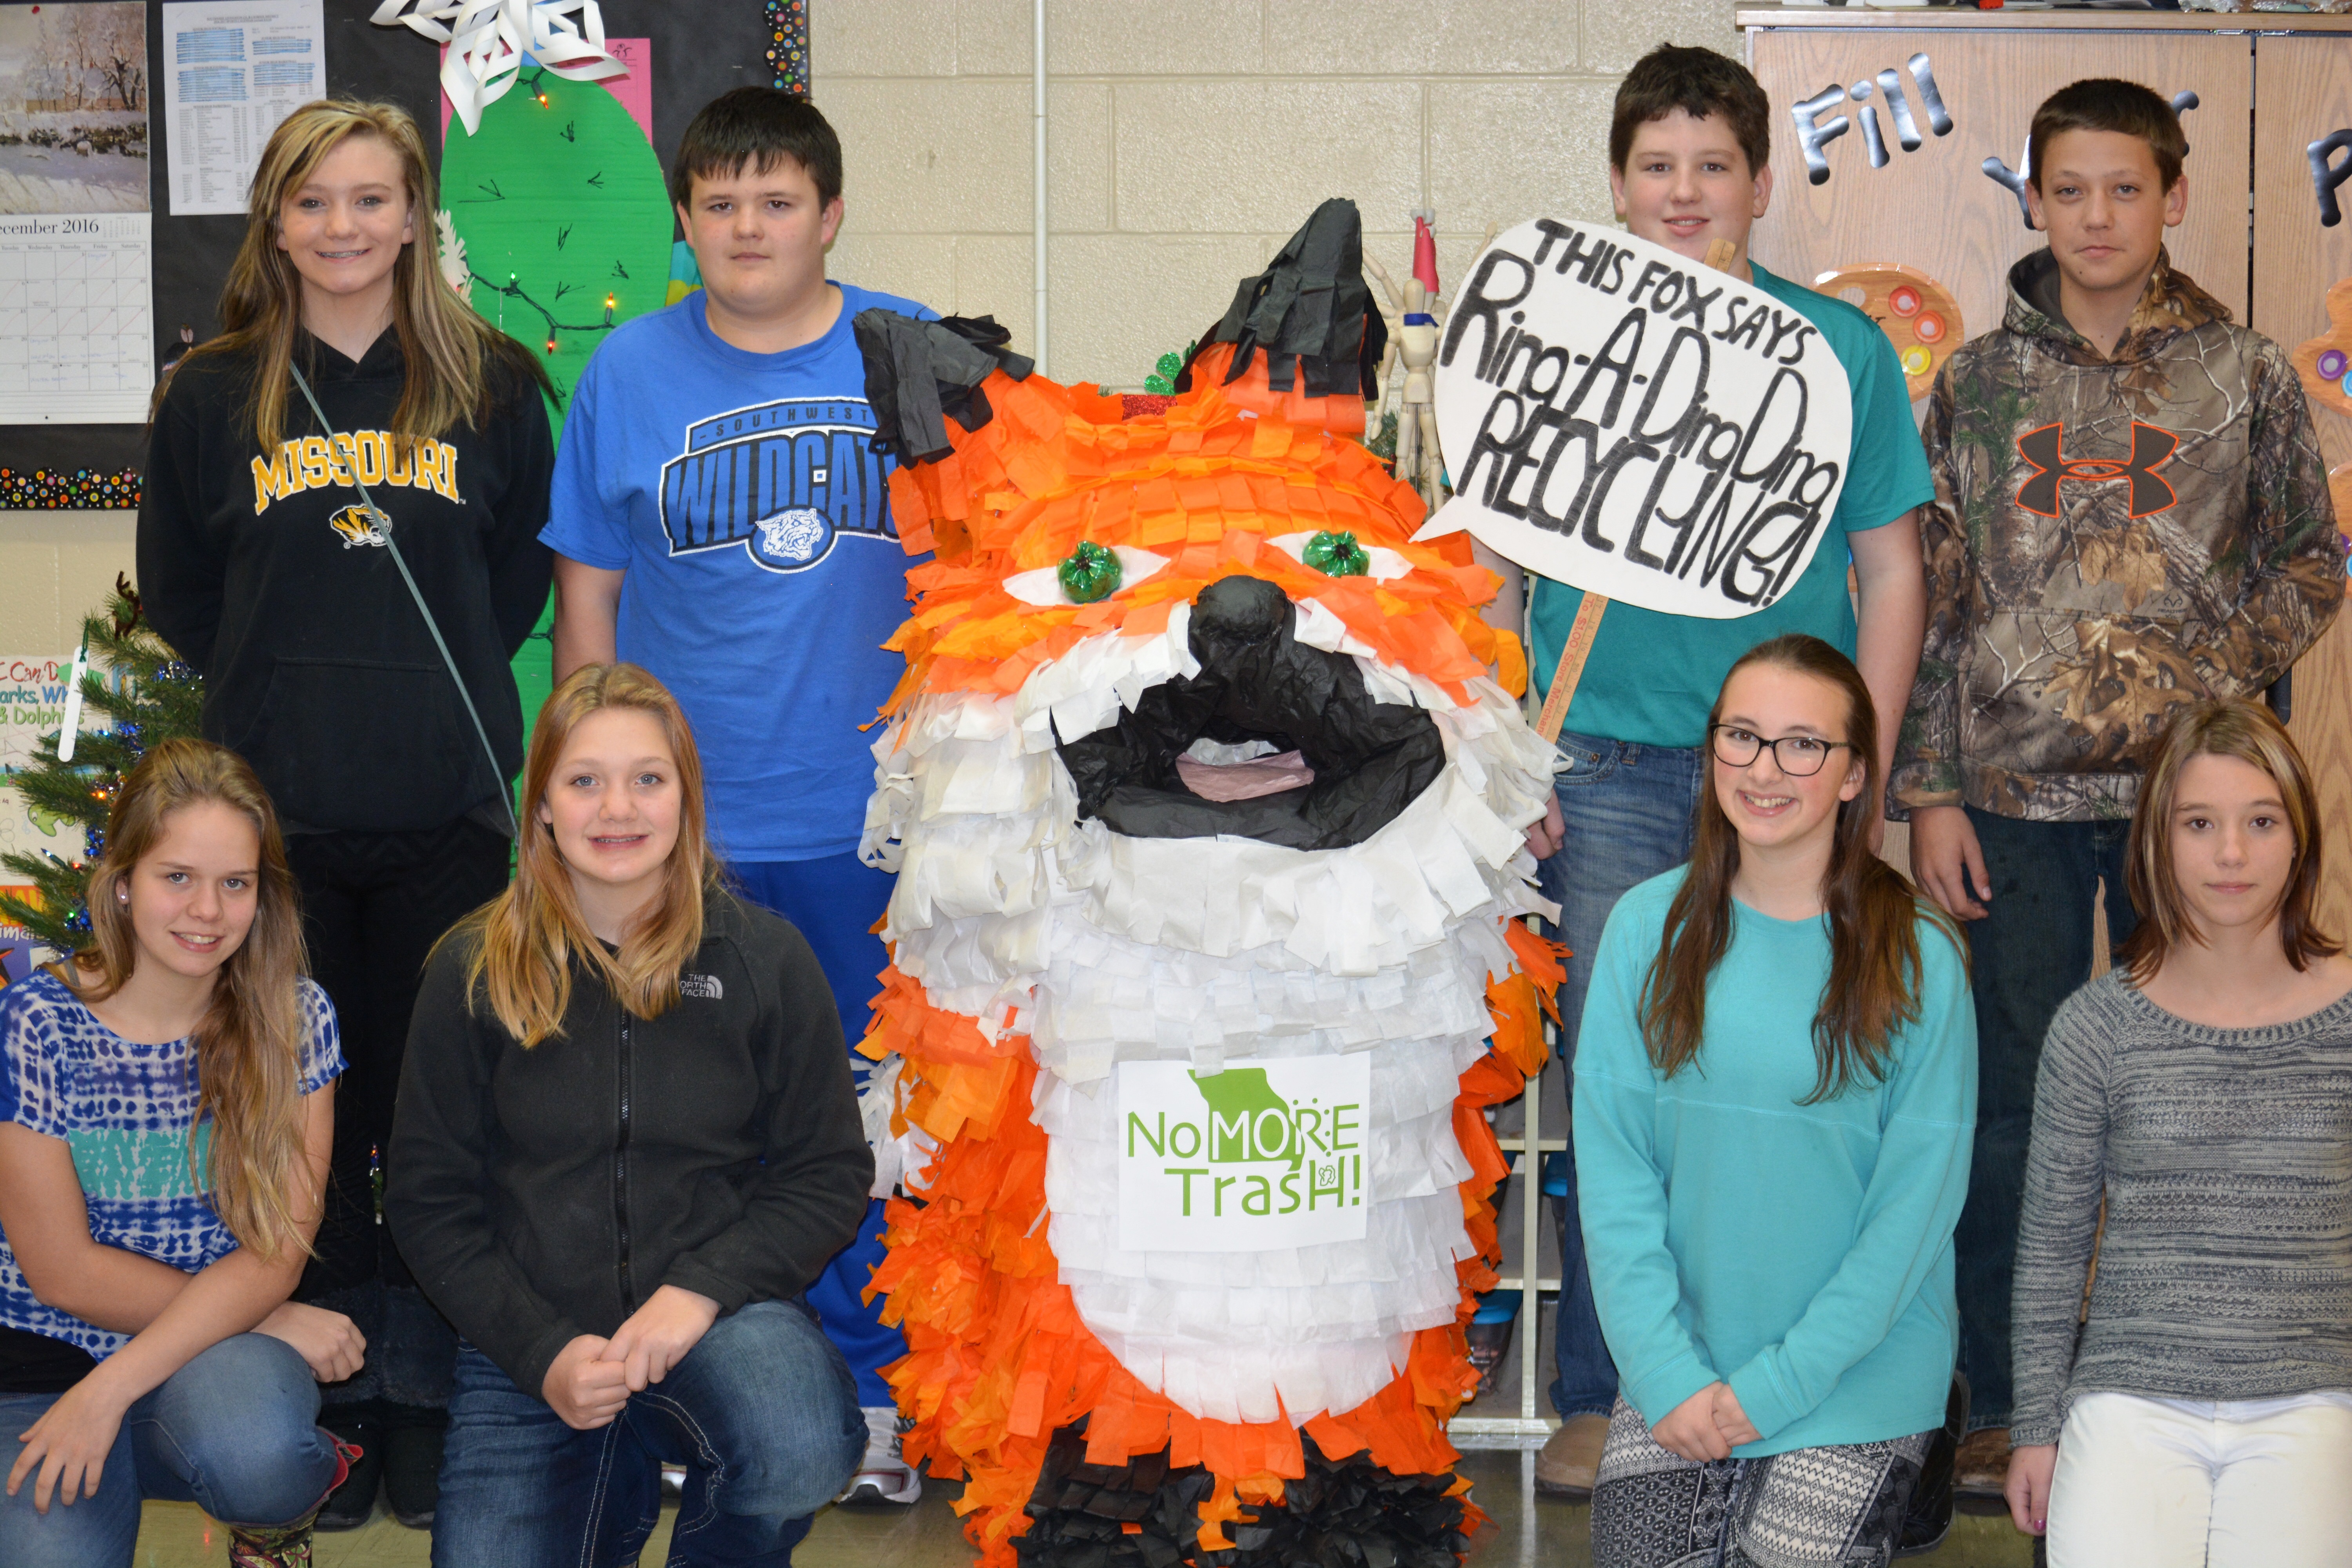 Livingston County Students win MDC and MoDOT trashcan decorating contest